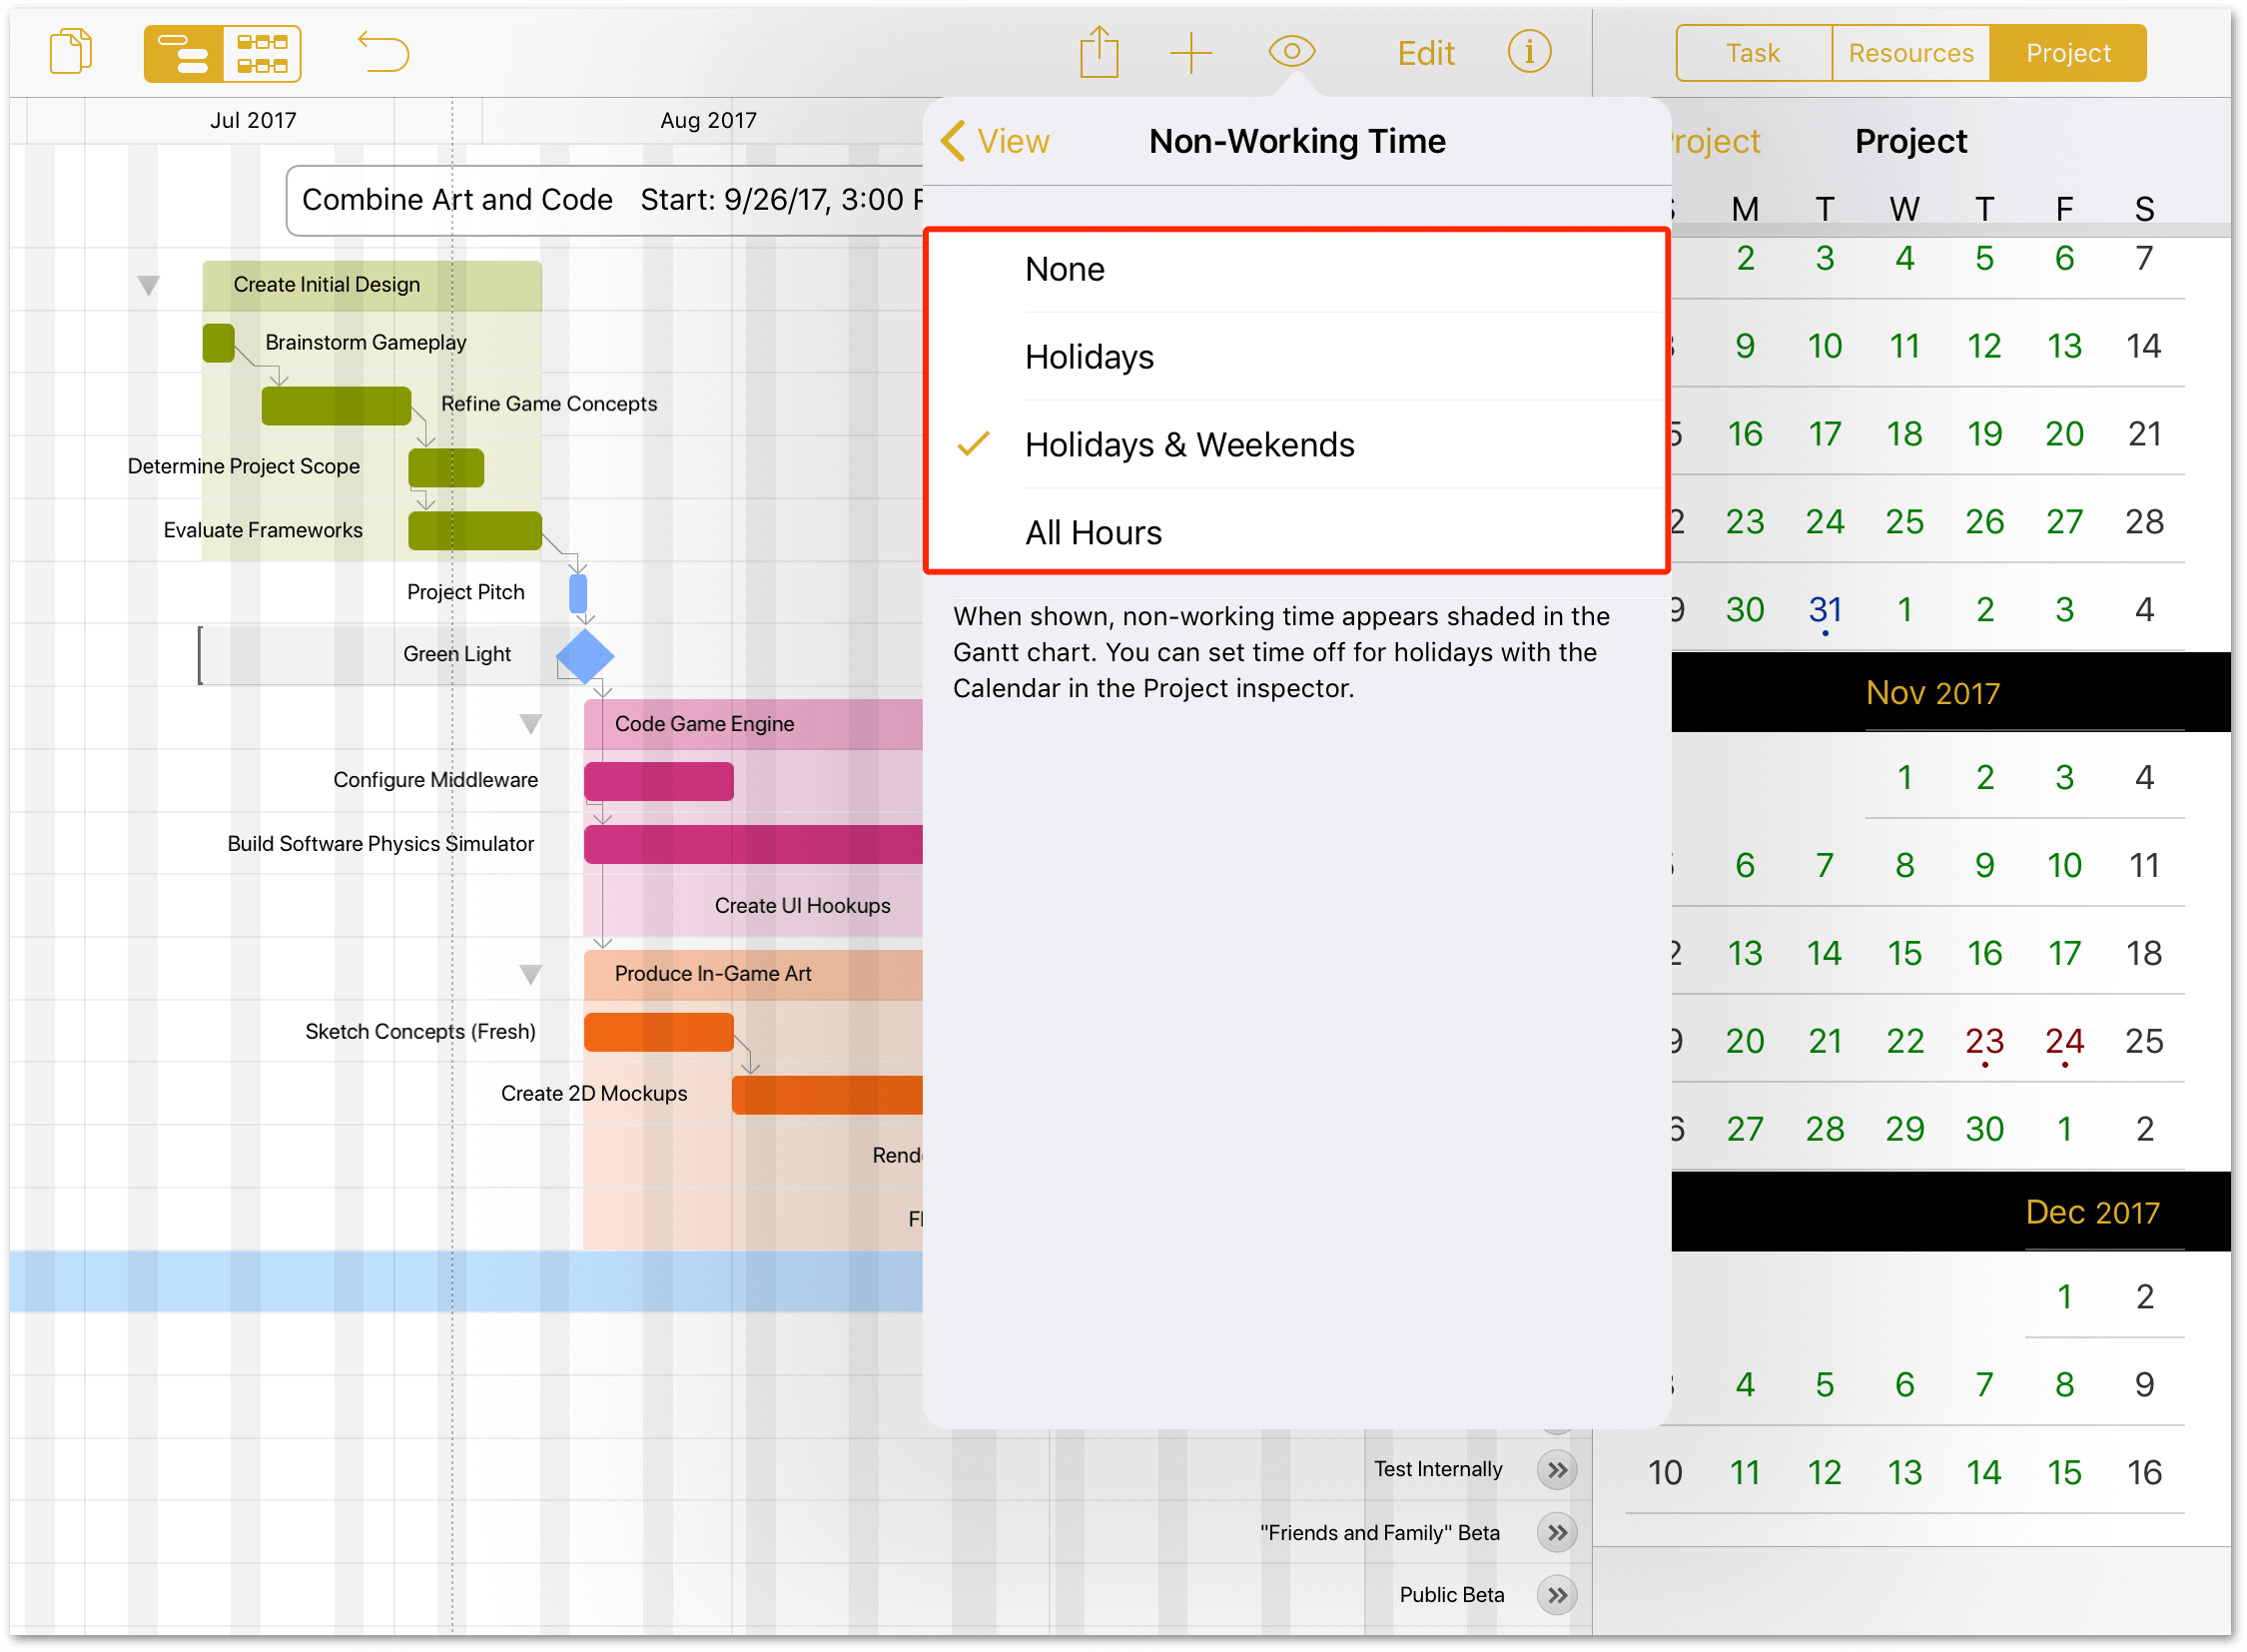 The View menu, displaying the options for non-working time that you can opt to see along with the project Gantt chart